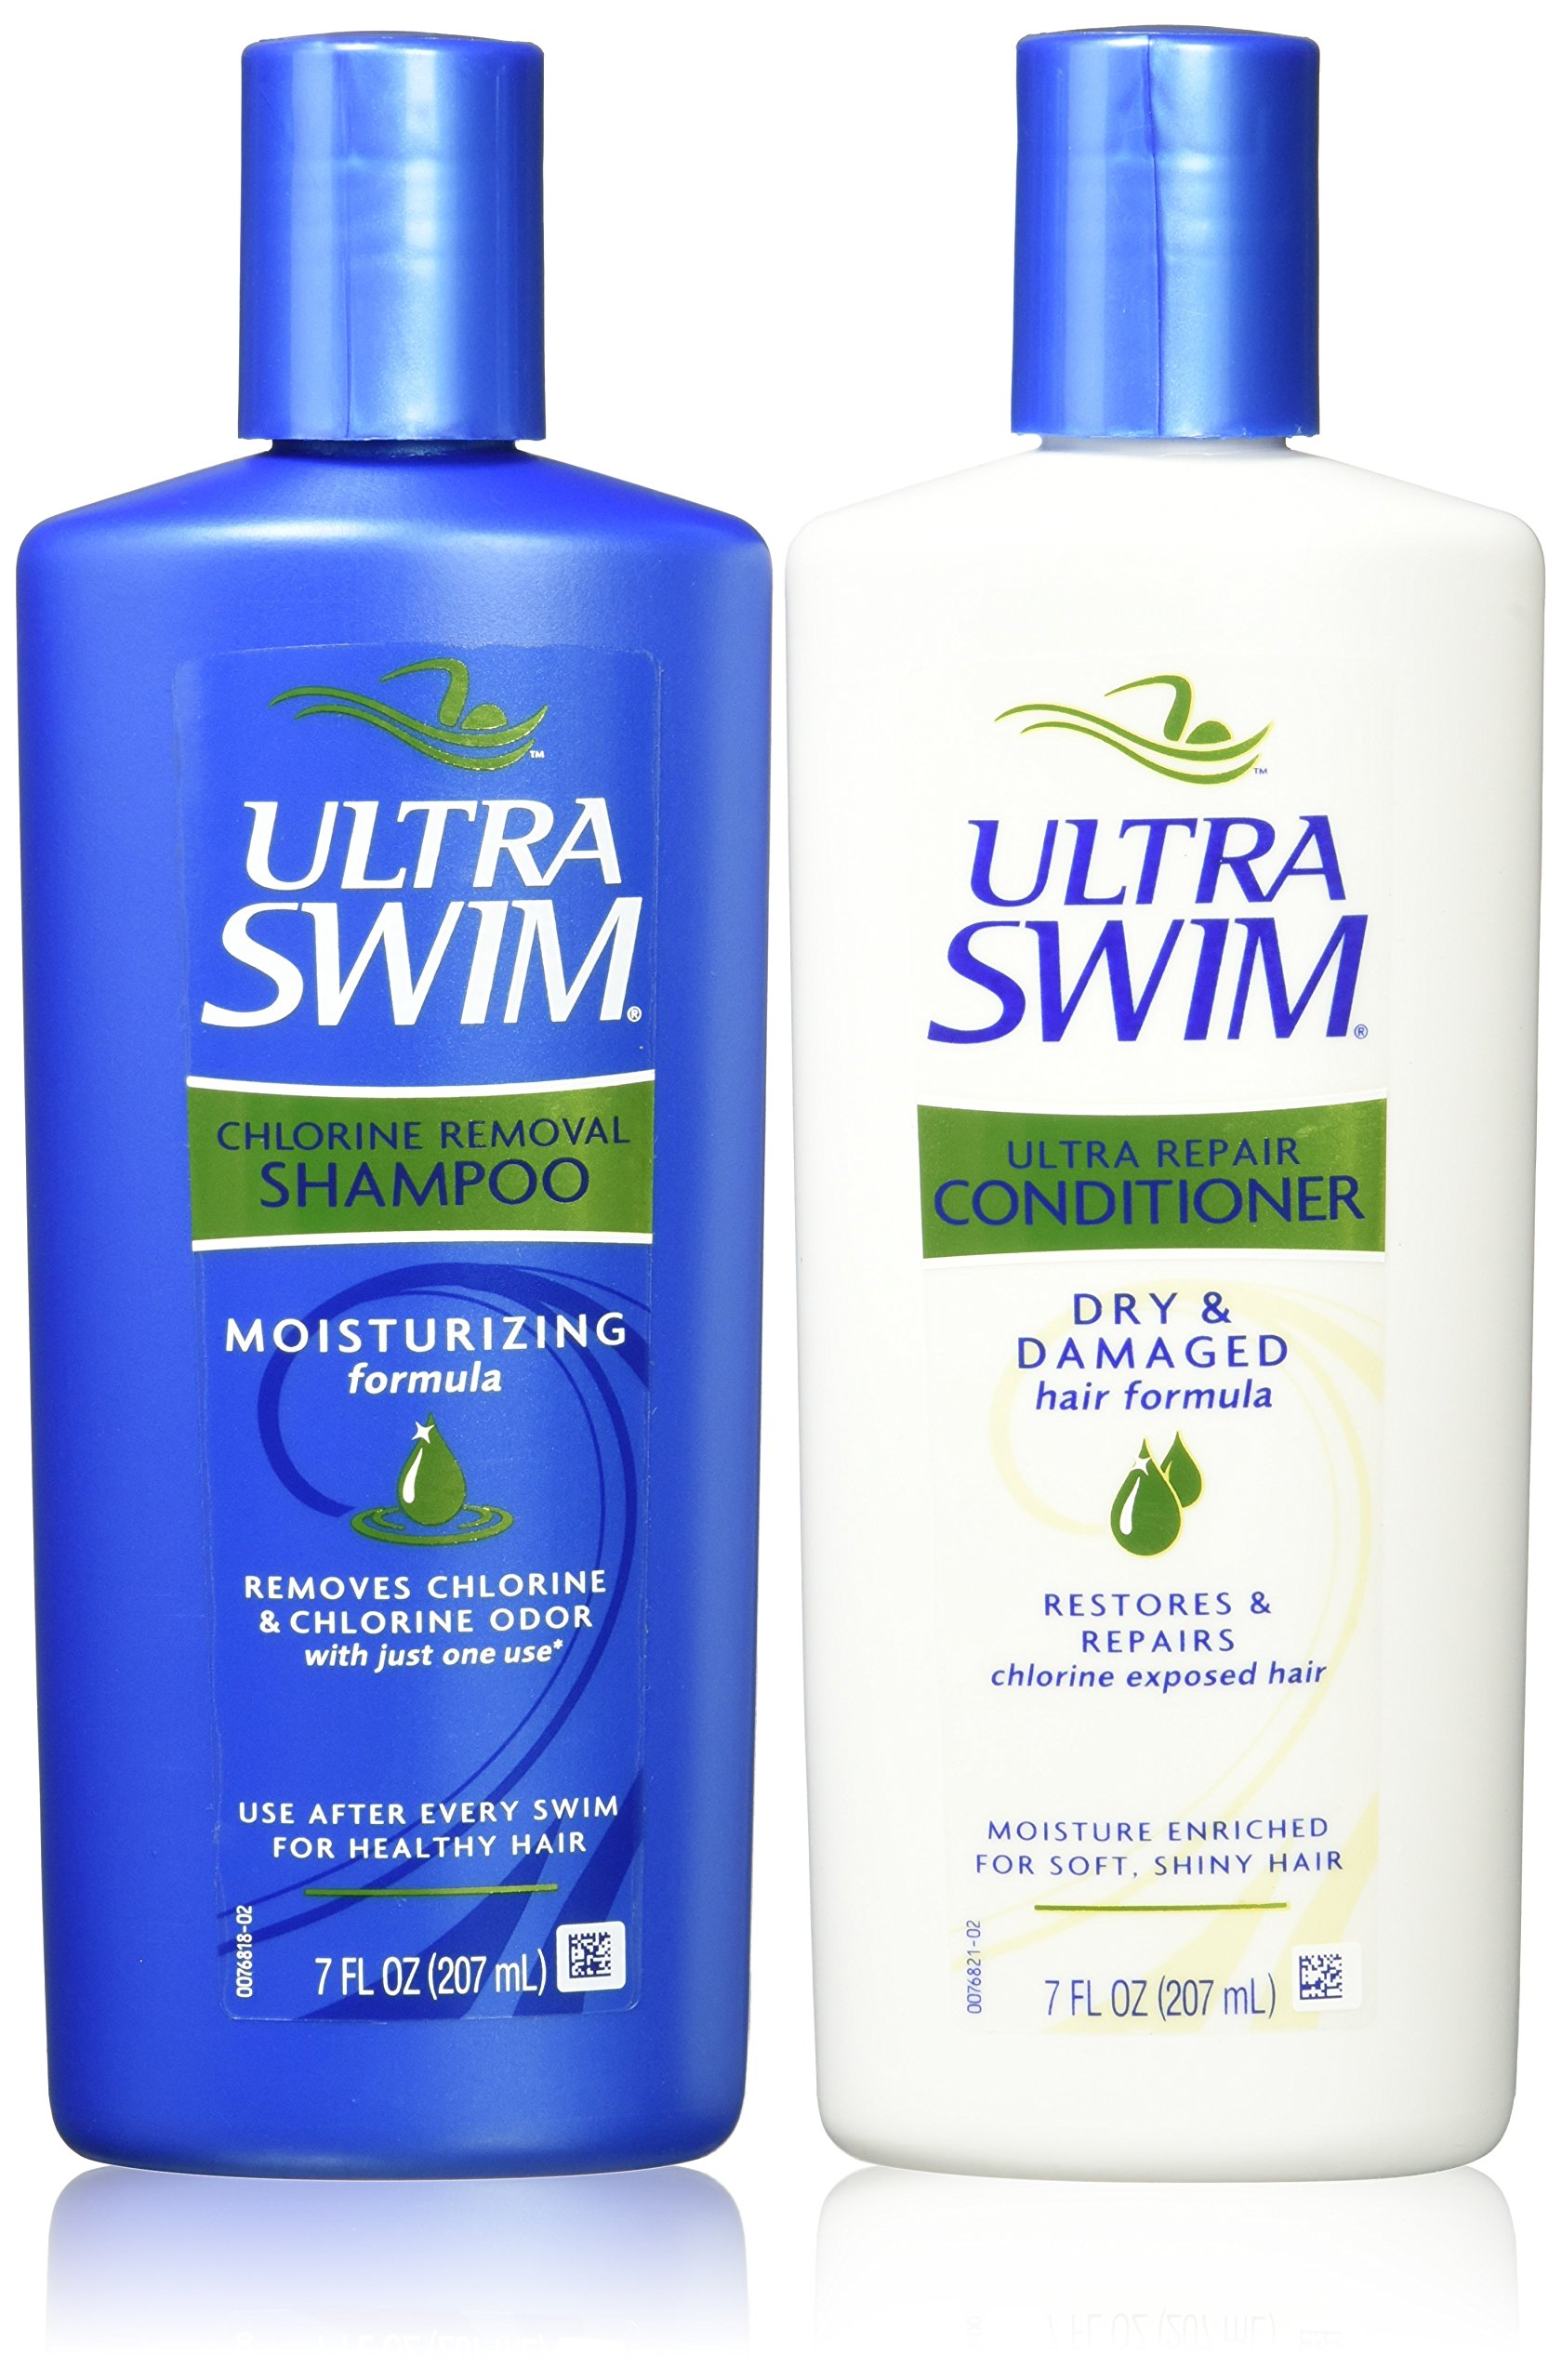 UltraSwim Dynamic Duo Repair Shampoo and Conditioner, 7 Fluid Ounce Each by UltraSwim